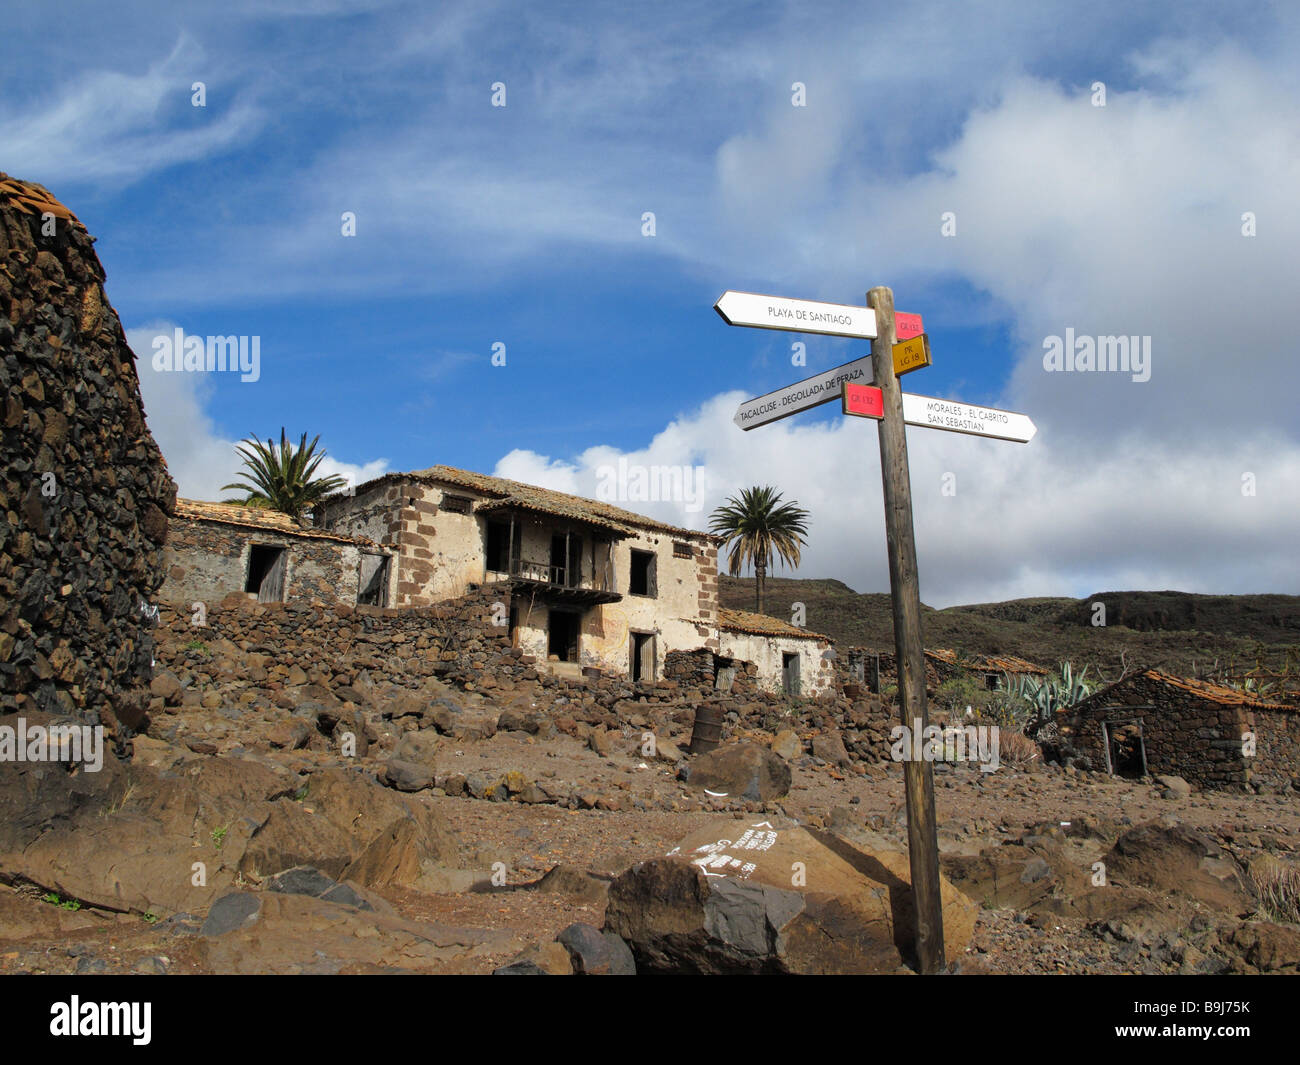 Signpost and deserted houses in Contreras near Playa Santiago, La Gomera, Canary Islands, Spain, Europe - Stock Image